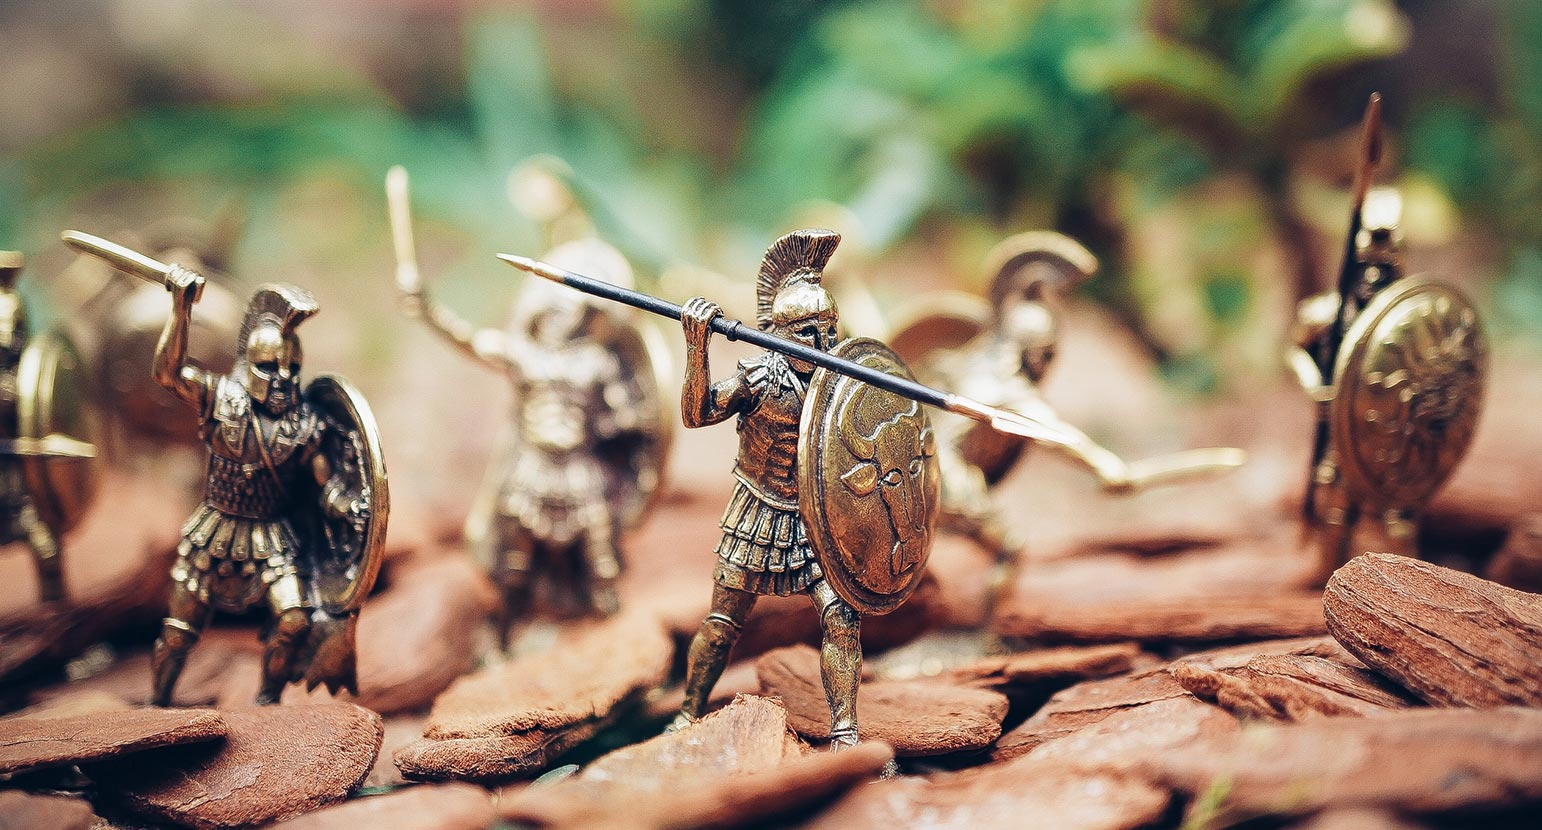 Toy soldiers prepare for battle